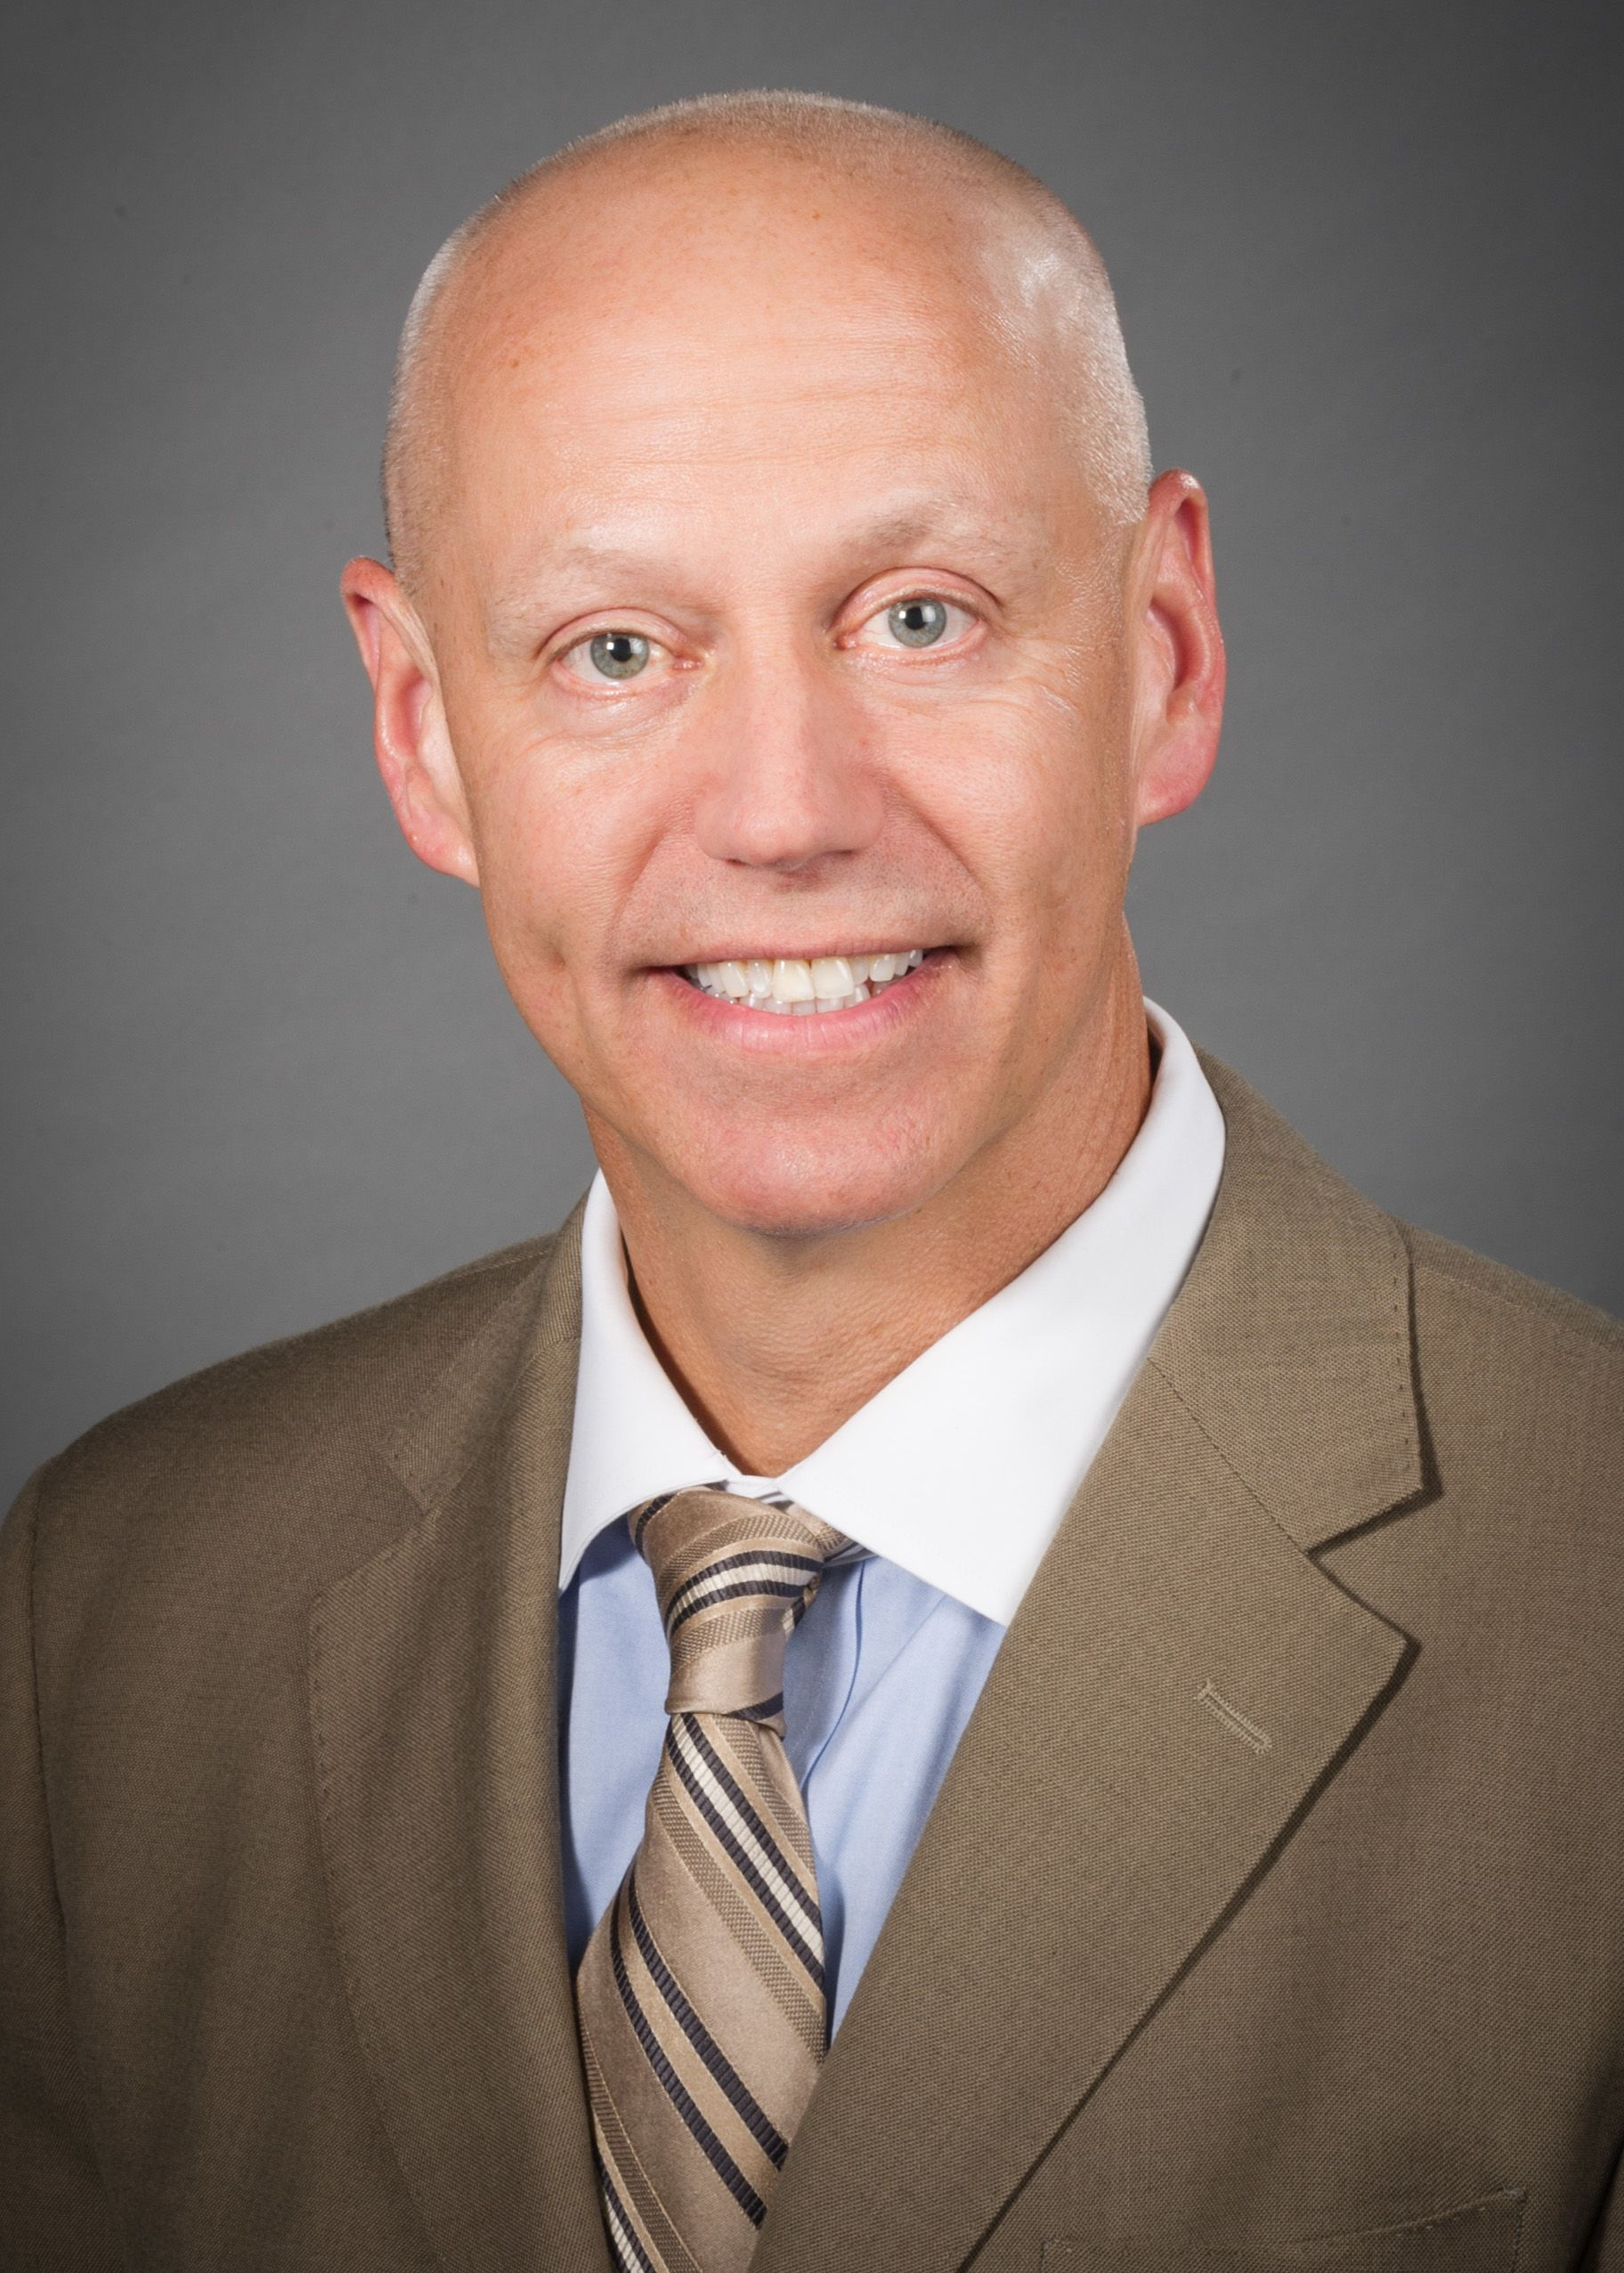 Nick Fitterman, MD, wearing a brown suit, blue shirt and gold tie.